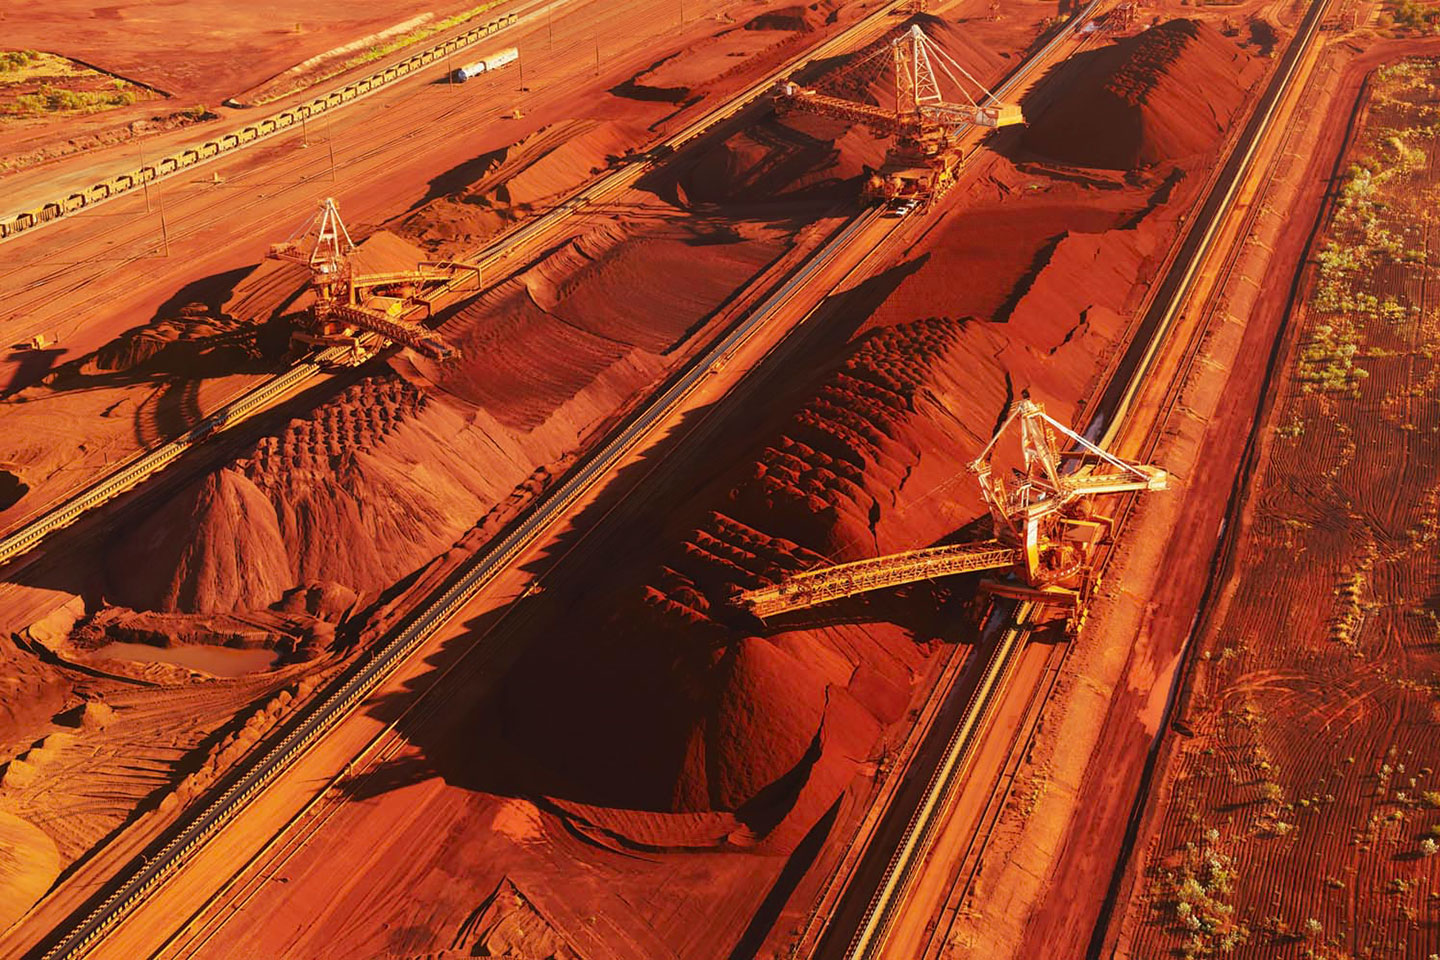 The mangled wreckage of BHP's runaway train which derailed in Western Australia